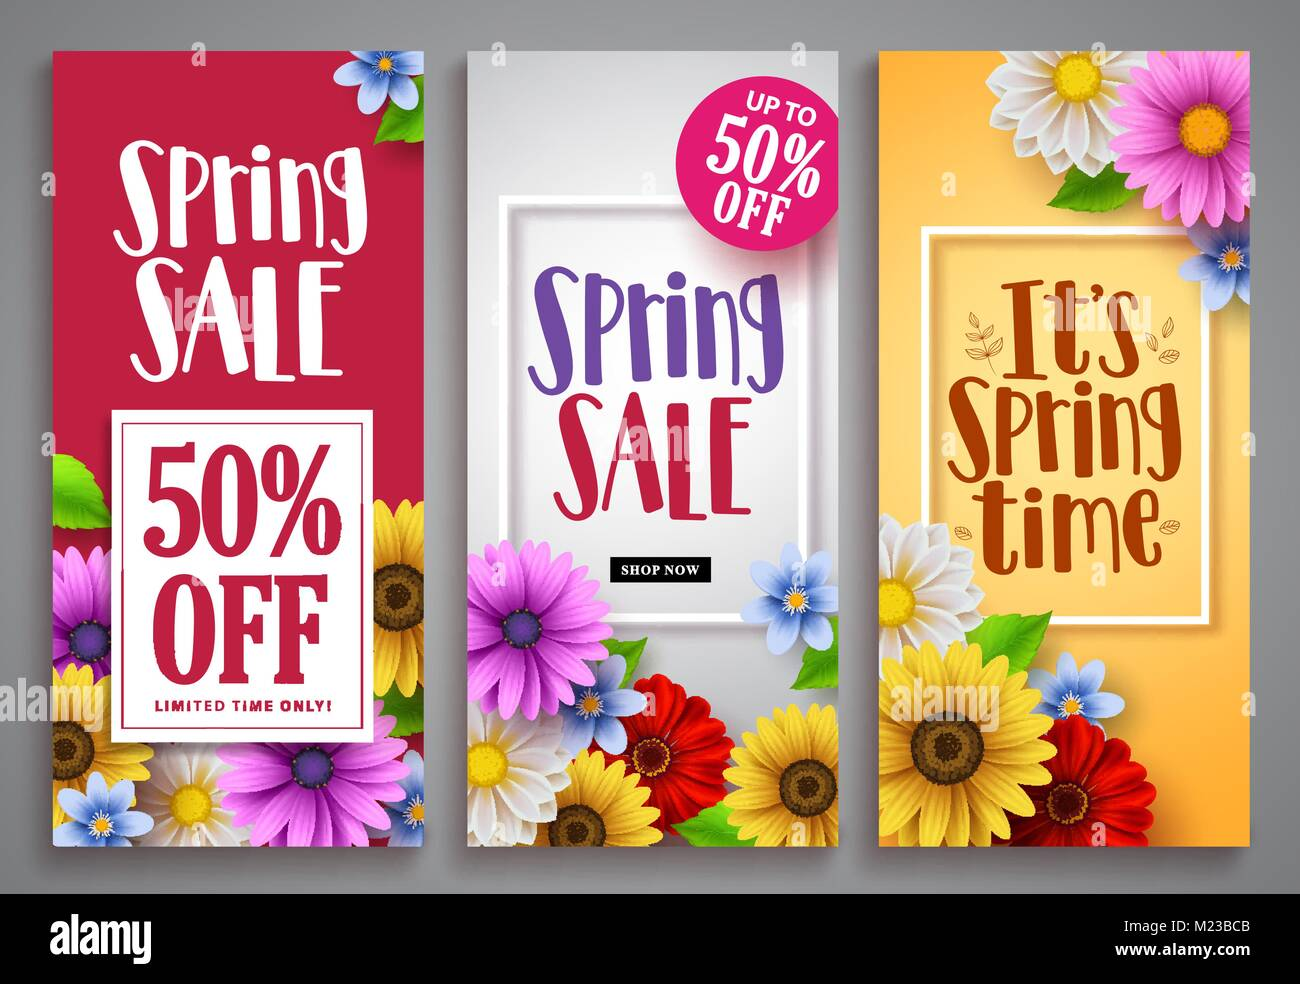 Spring sale vector poster set with colorful background templates spring sale vector poster set with colorful background templates frames and various daisy flowers for spring seasonal discount marketing izmirmasajfo